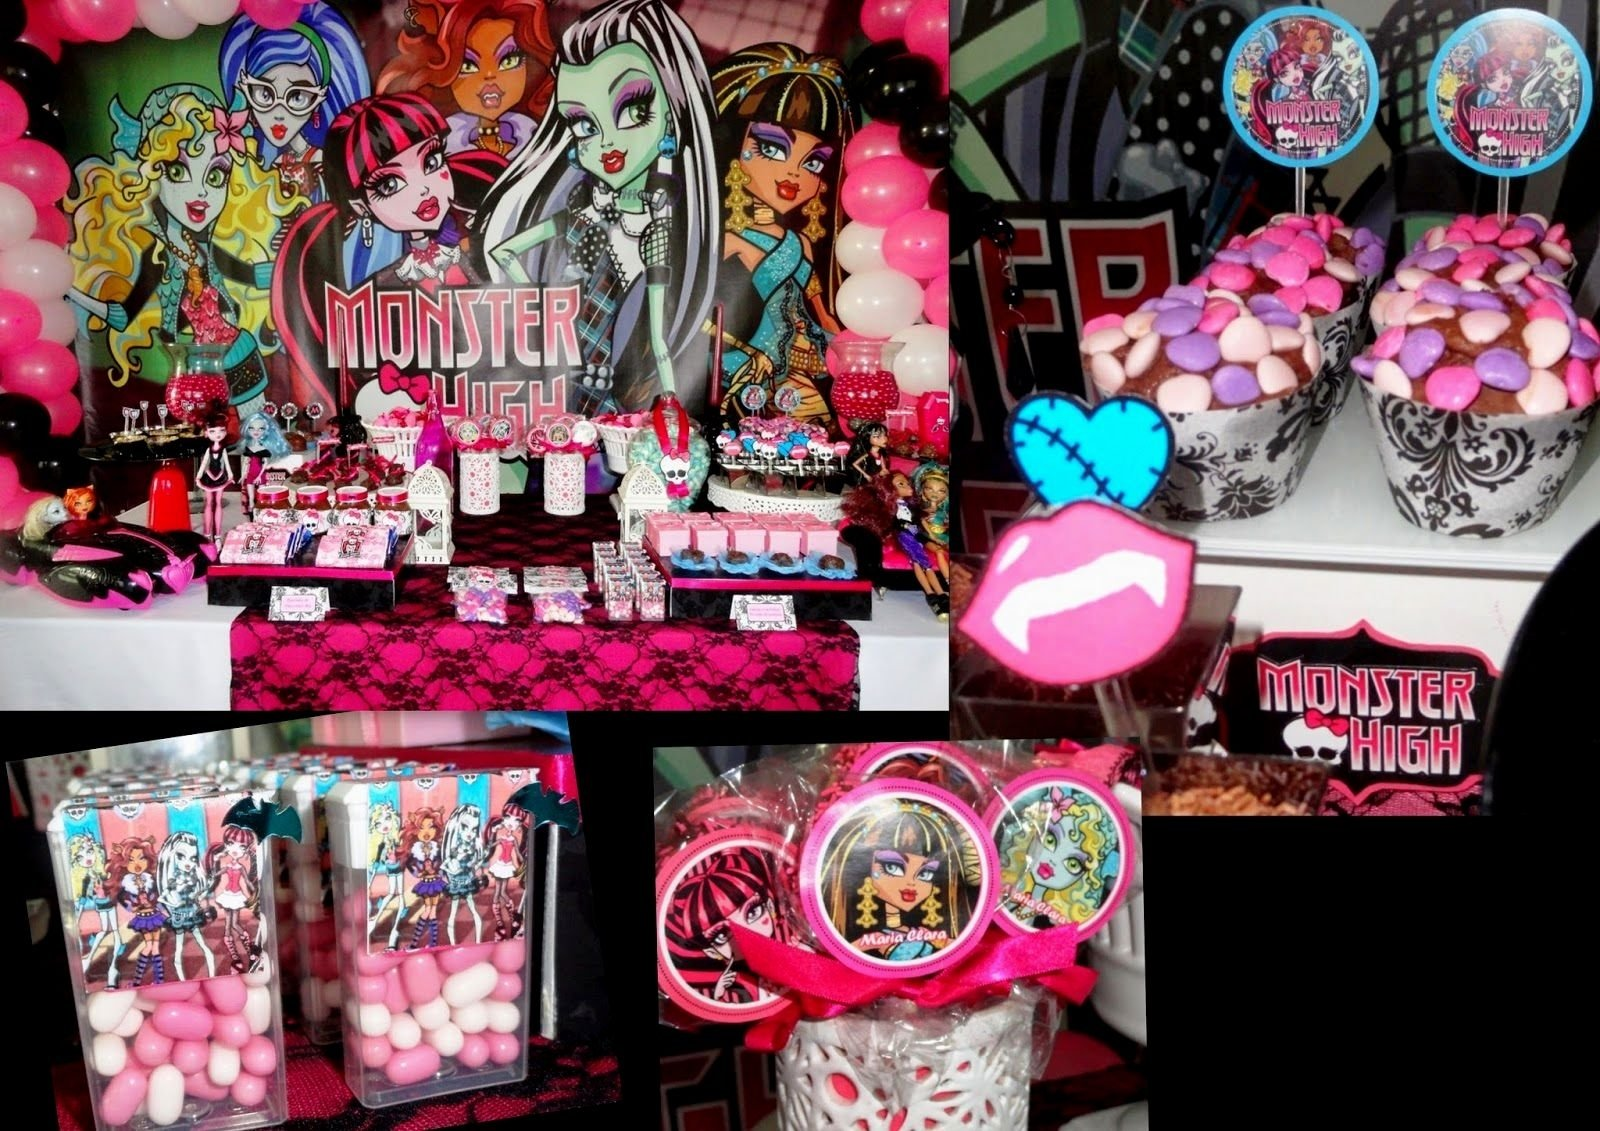 10 Fabulous Monster High Ideas For Birthday Party monster high birthday party ideas pinterest archives decorating of 1 2020